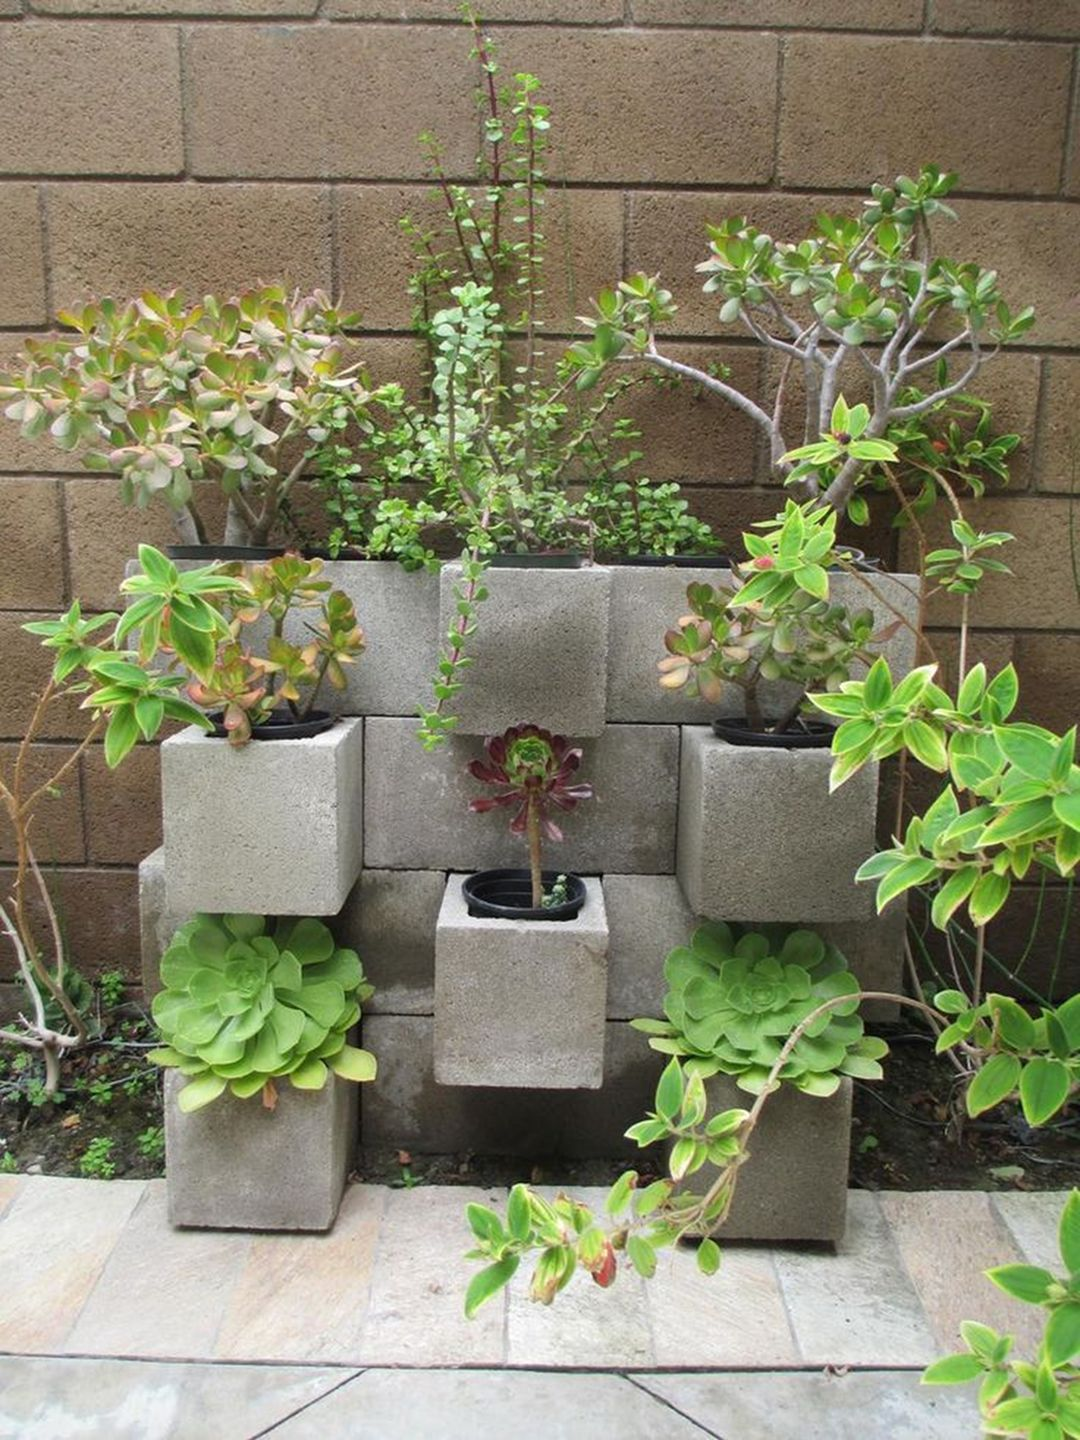 20 Chic Diy Cinder Block Garden Ideas To Enhance Your Home Outdoor Cinder Block Garden Diy Garden Projects Cinderblock Planter